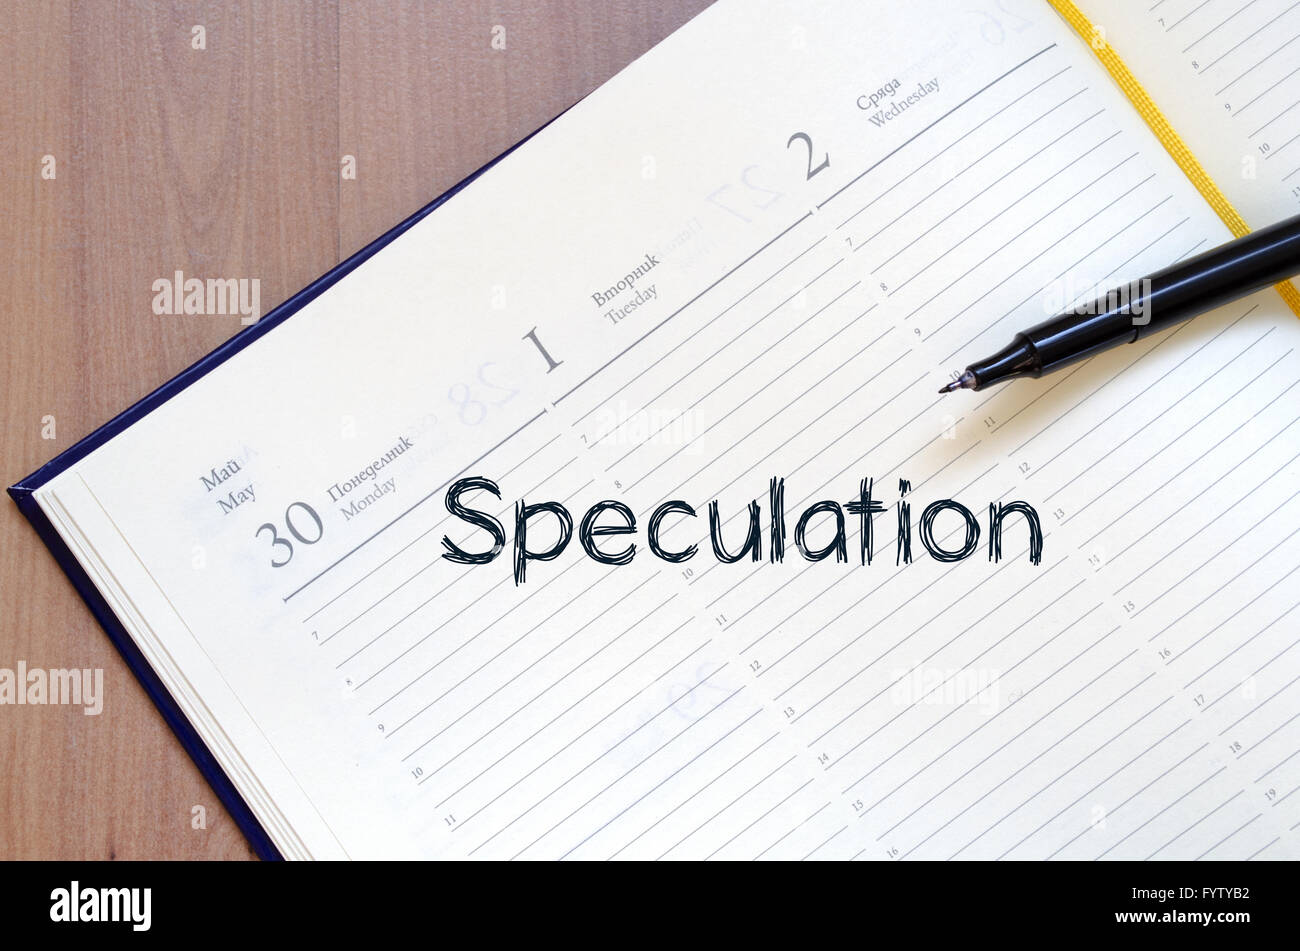 Speculation write on notebook Stock Photo